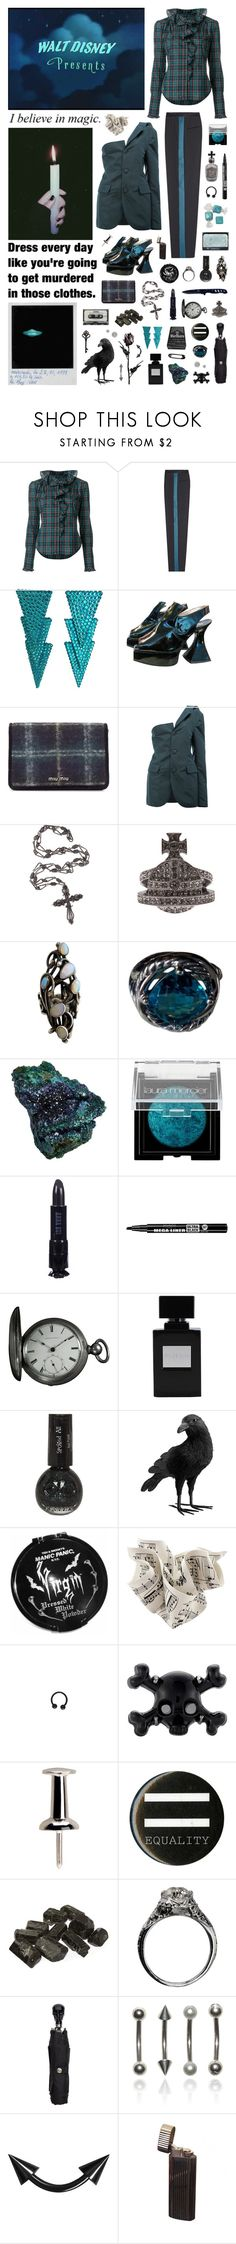 """I wish...I can have more days when I think that my life is a fairytale"" by nothingisnormal ❤ liked on Polyvore featuring Faith Connexion, Roksanda, John Fluevog, Miu Miu, MOOHONG, Vivienne Westwood, David Yurman, Hard Candy, Laura Mercier and Anna Sui"